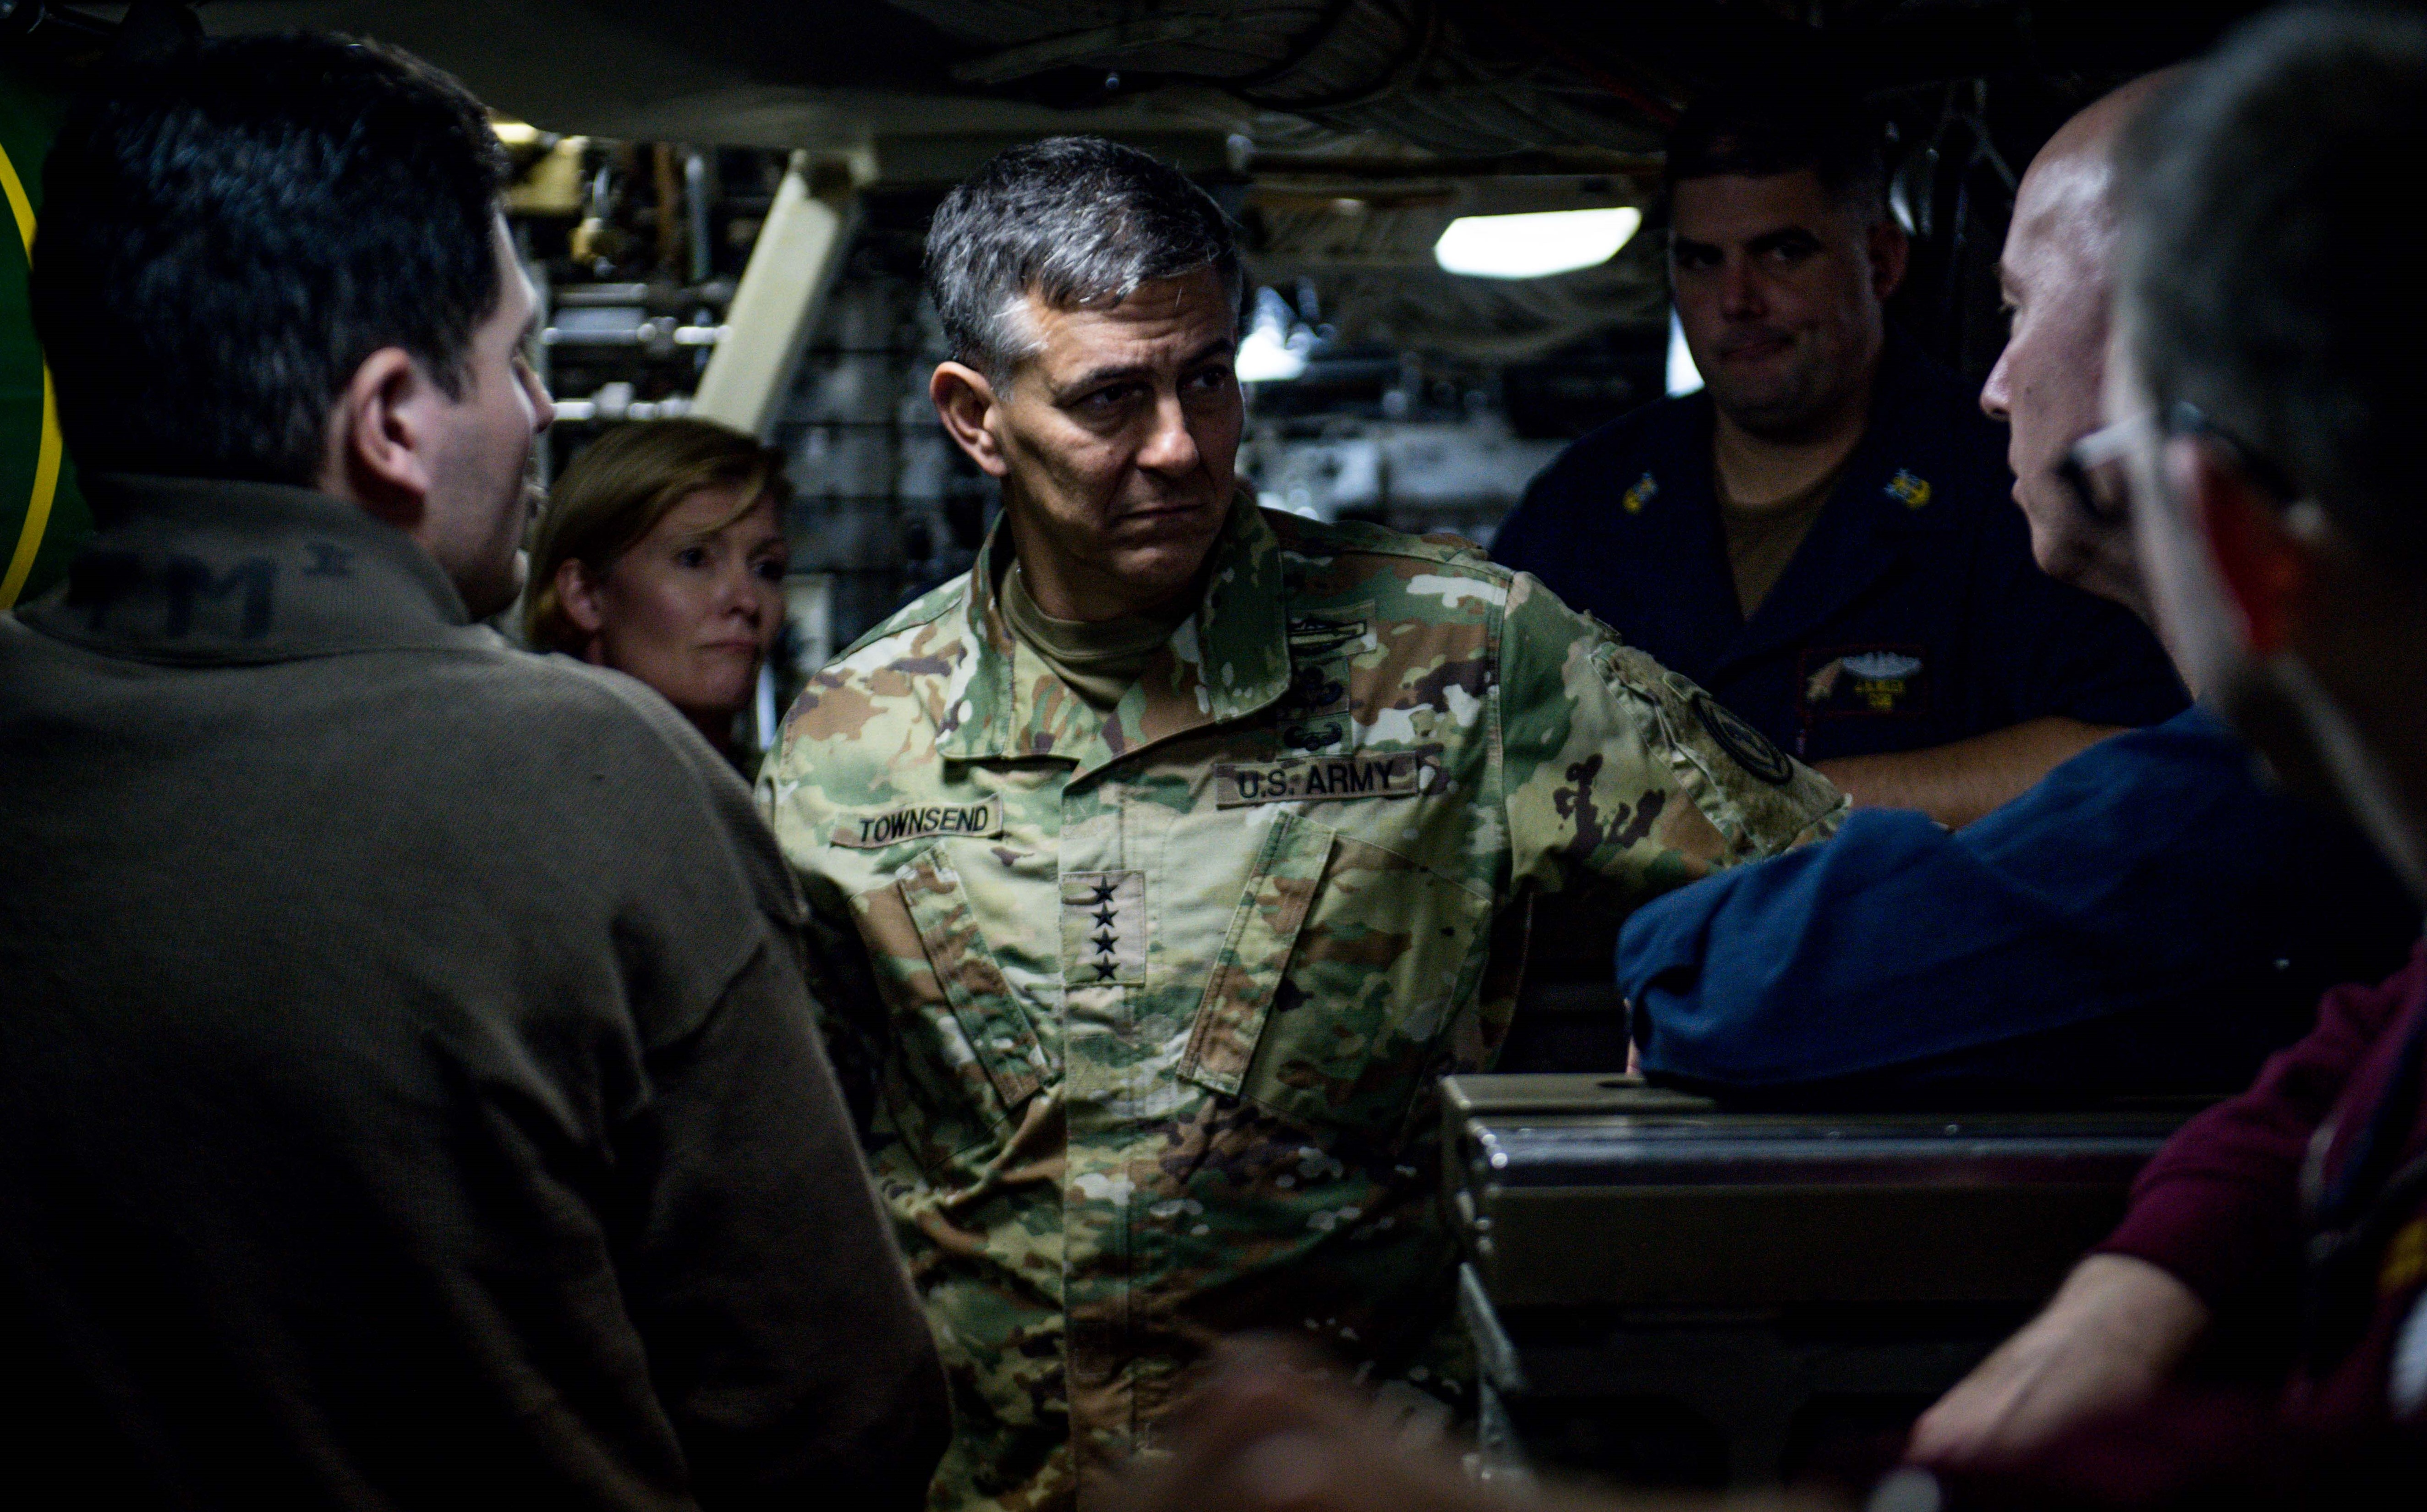 U.S. Army Gen. Stephen J. Townsend, commander, U.S. Africa Command (AFRICOM), right, speaks with Rear Adm. William J. Houston, deputy commander, U.S. 6th Fleet (C6F) and commander, Submarine Group (SUBGRU) 8, in the torpedo room aboard the Ohio-class fleet guided-missile submarine USS Florida (SSGN 728) in the Mediterranean Sea Nov. 25, 2019. AFRICOM, a full-spectrum combatant command, is one of the six U.S. Defense Department's geographic combatant commands and is responsible for all DoD operations, exercises, and security cooperation on the African continent, its island nations, and surrounding waters. (U.S. Navy photo by Mass Communication Specialist 2nd Class Jonathan Nelson)